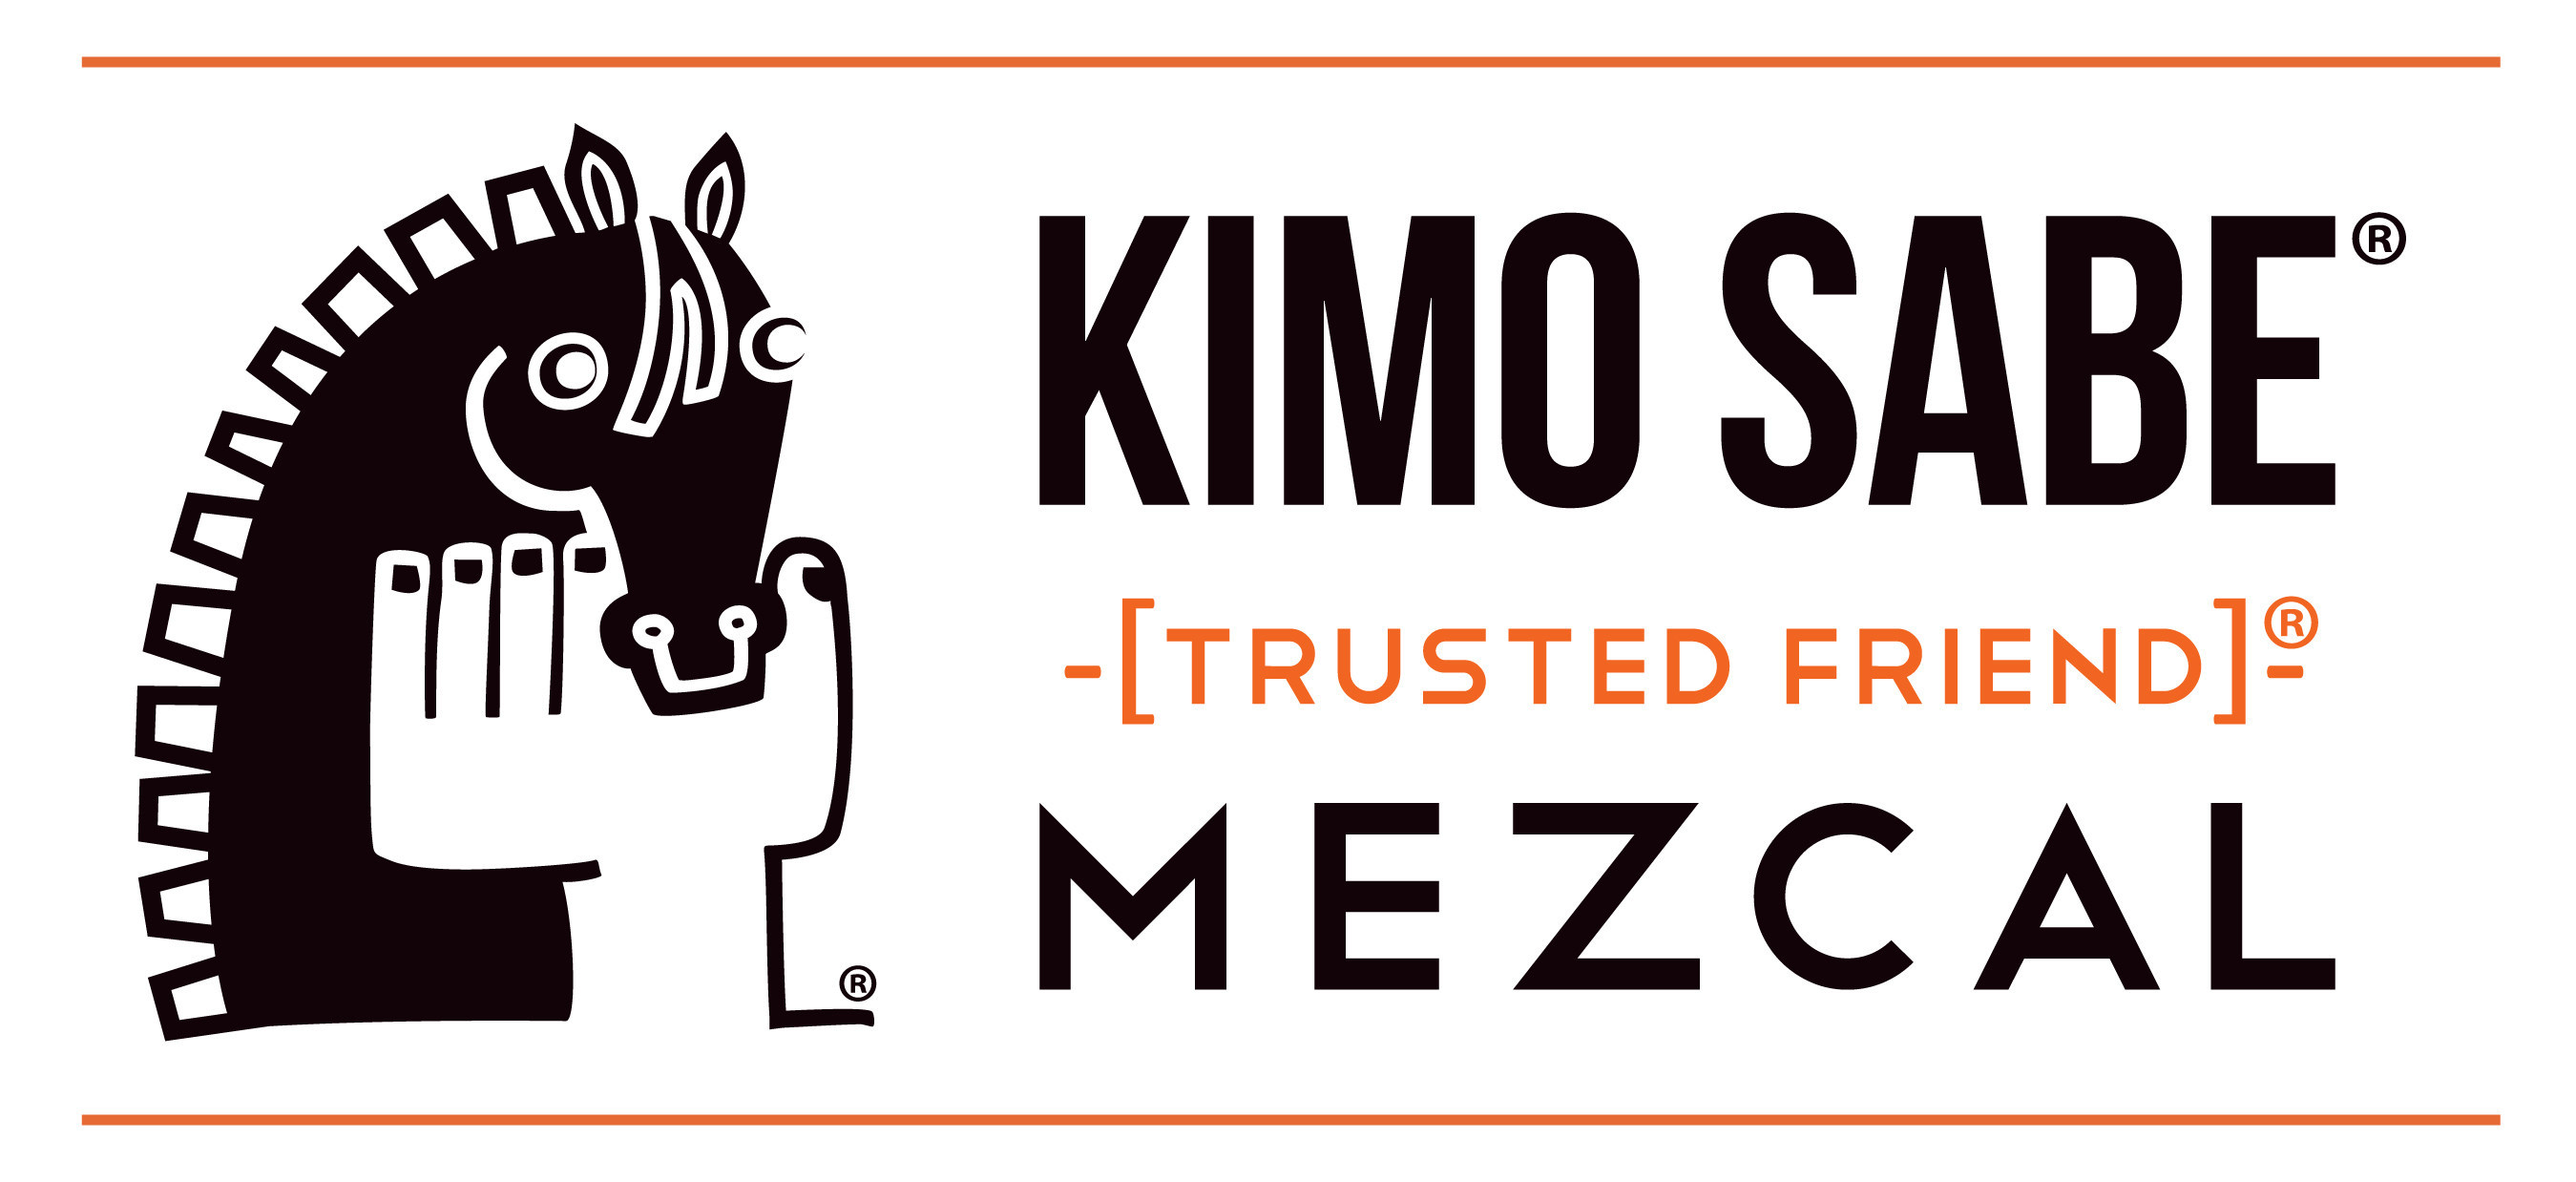 Kimo Sabe Trusted Friend Mezcal 100,000 person, 10 city taste test tour - What's Shakin' week of May 29